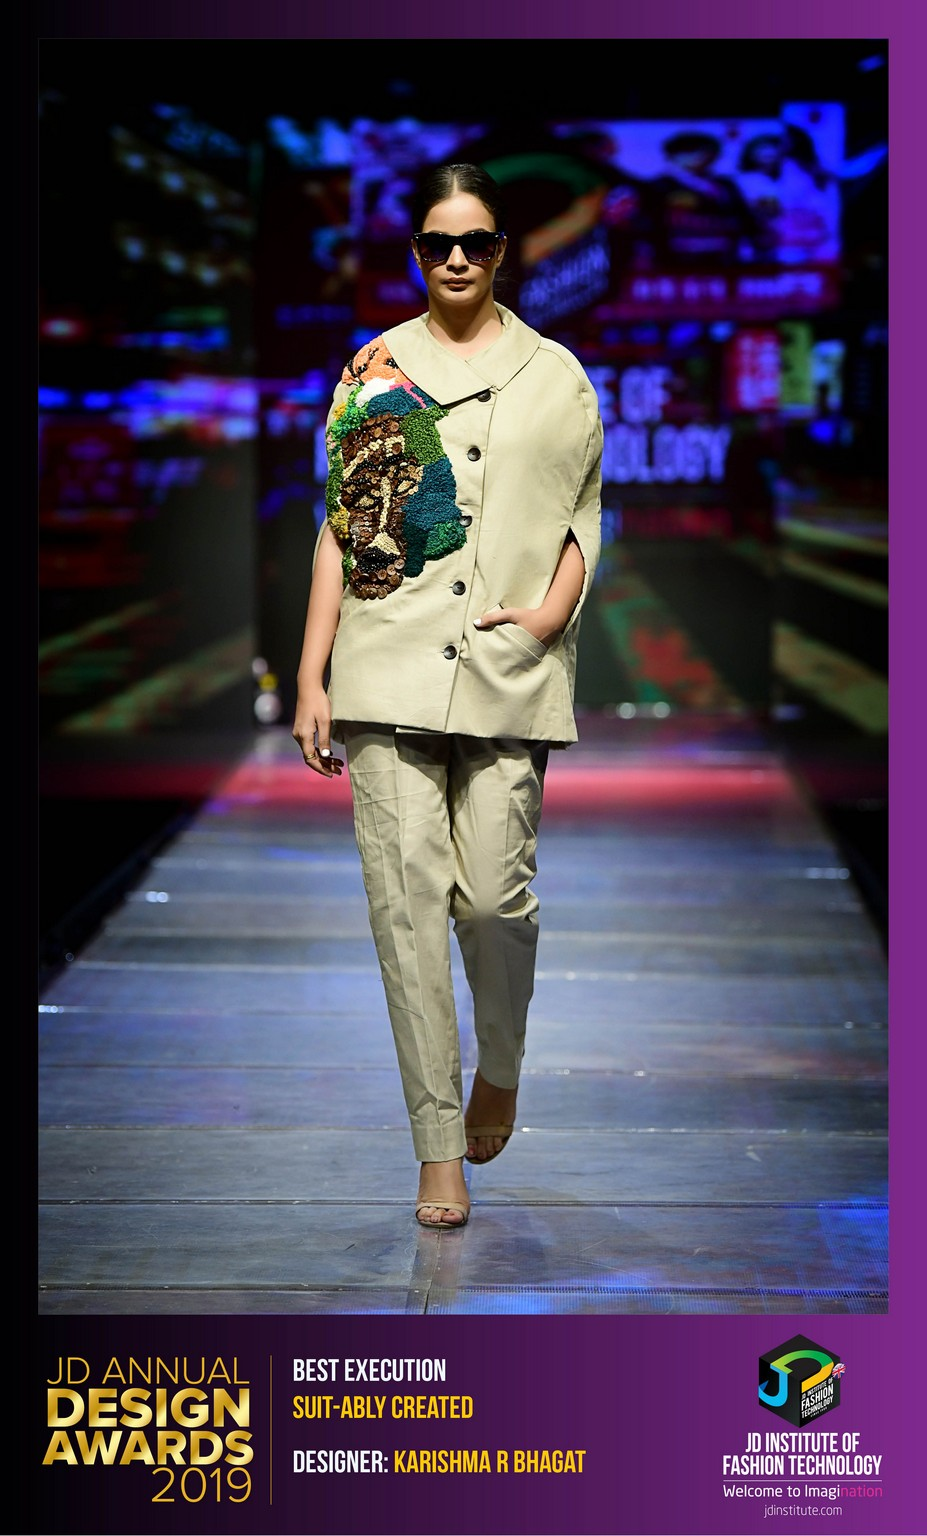 SUIT-ABLY CREATED - CURATOR - JDADA2019 suit-ably created - SUIT ABLY CREATED 1 1 - SUIT-ABLY CREATED – CURATOR – JDADA2019